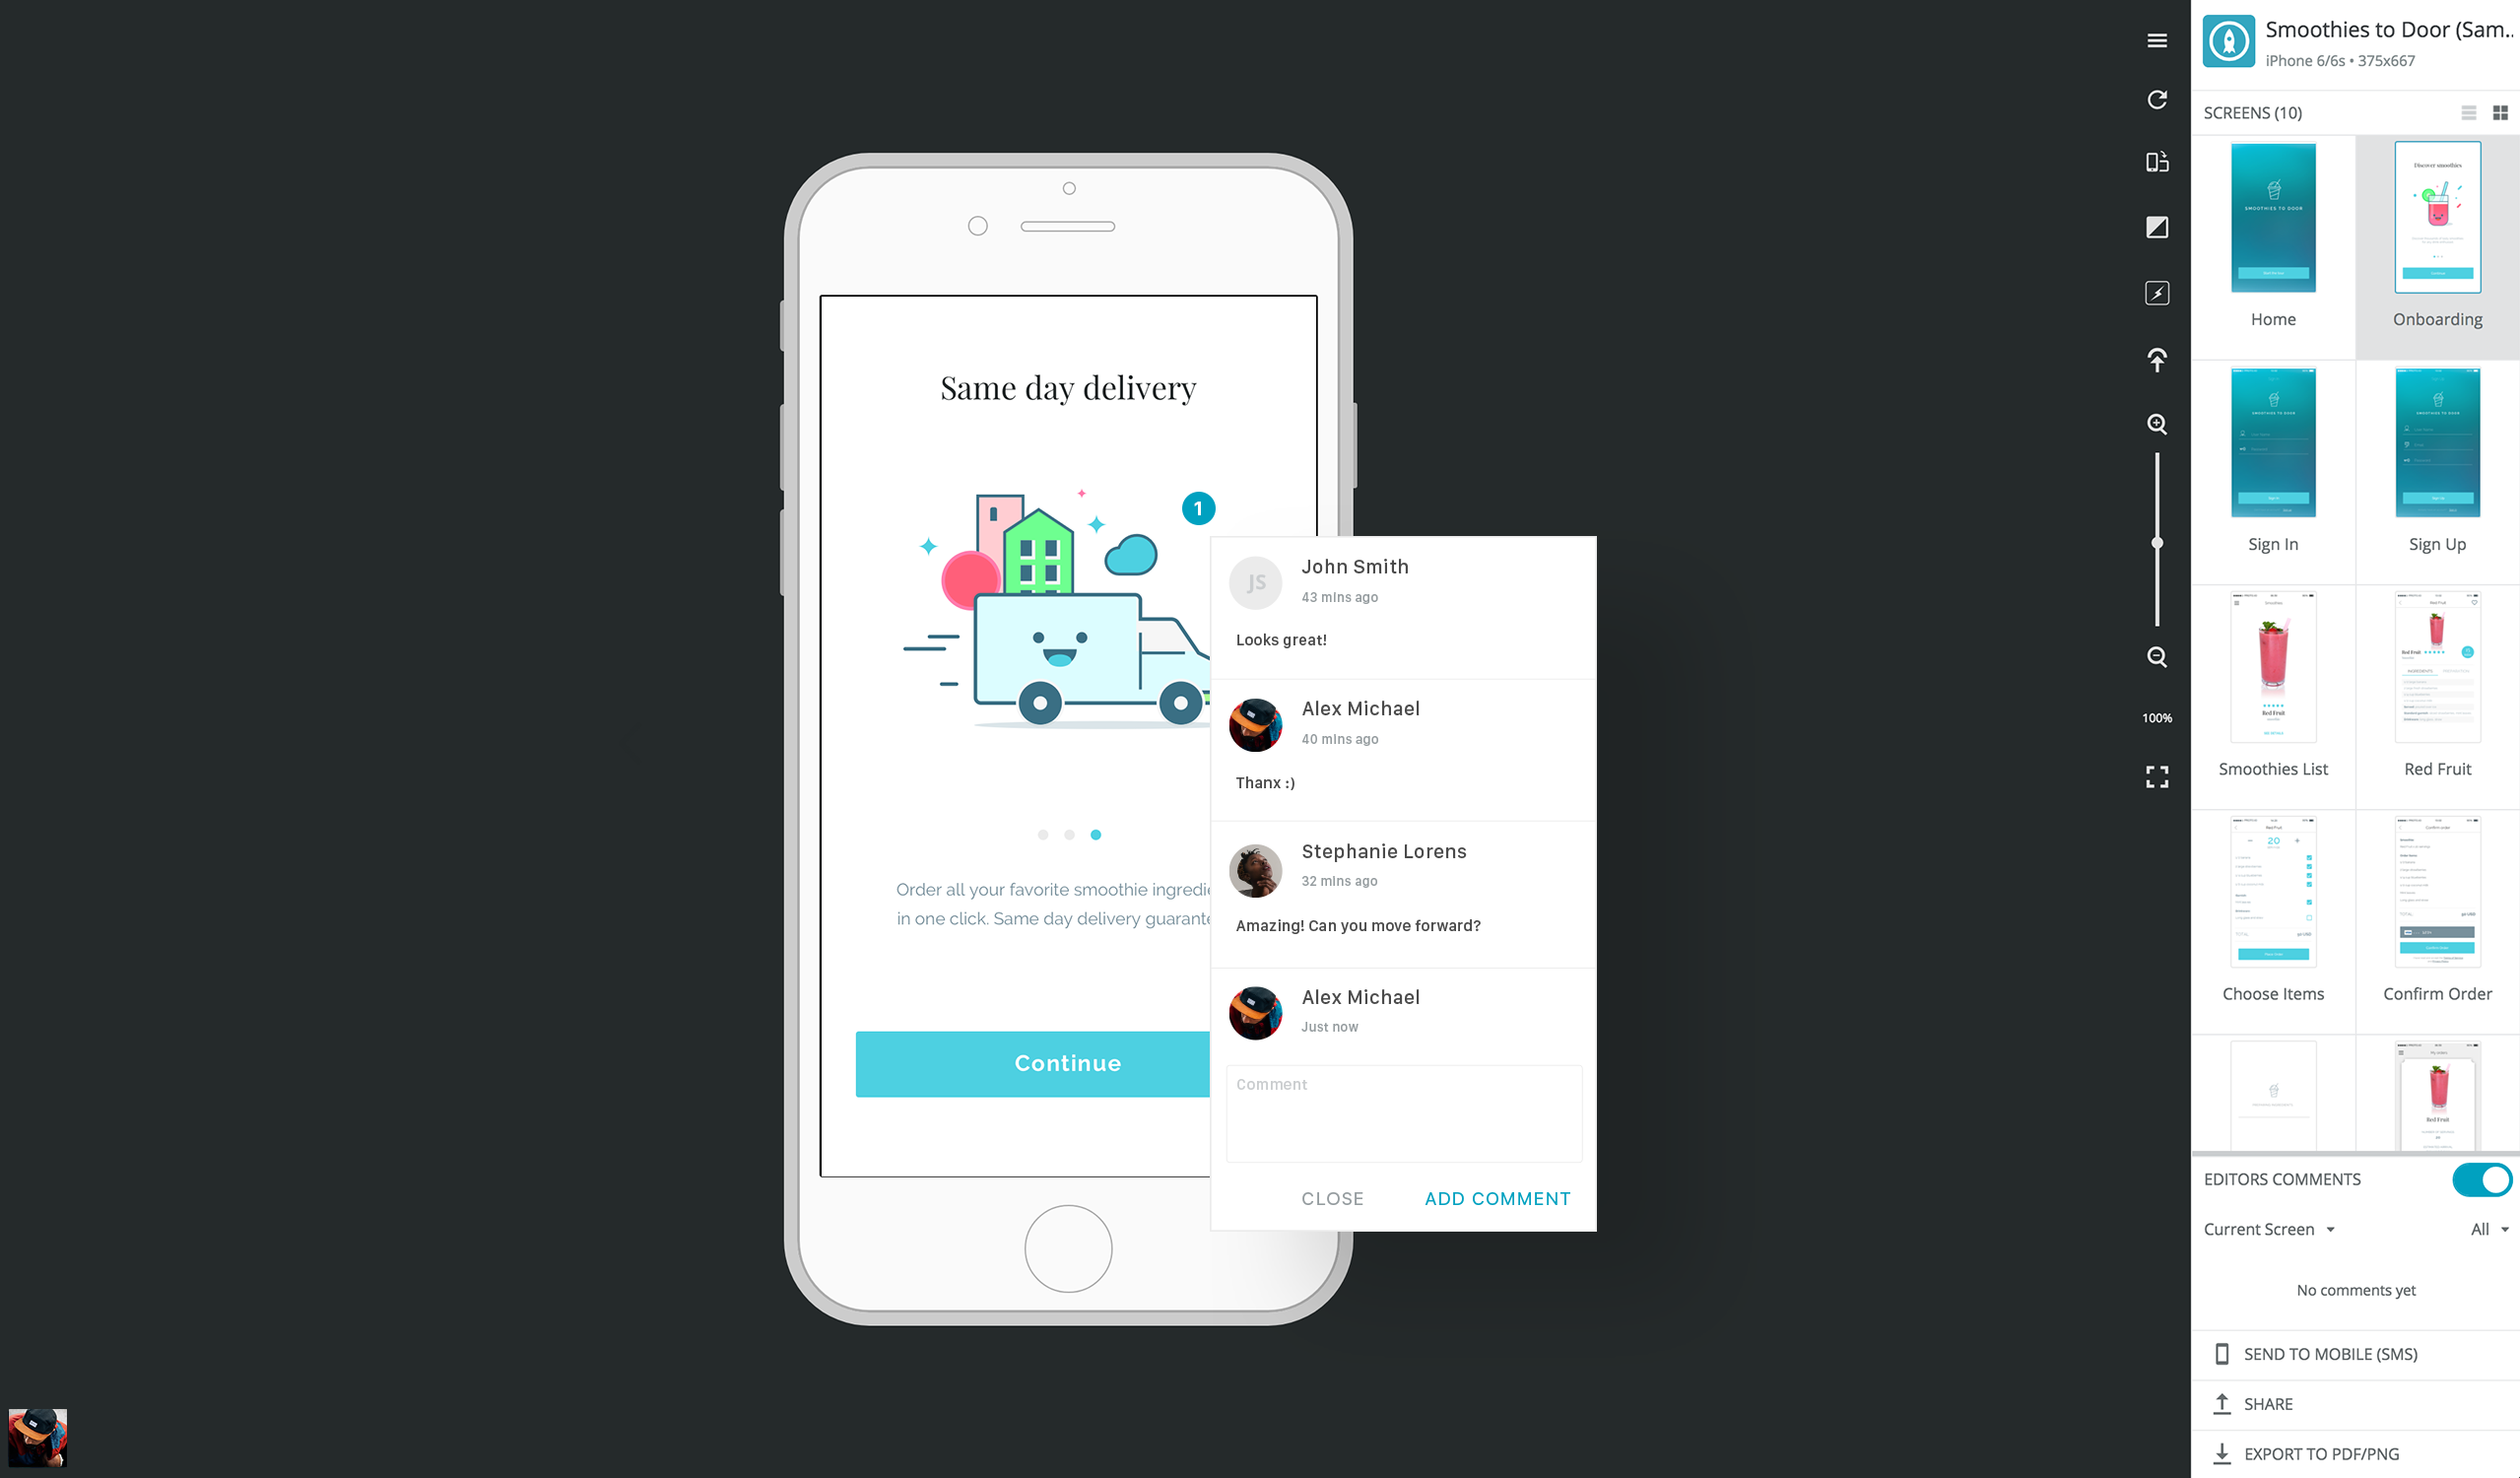 A screenshot of the Proto.io product in which you can view comments left on a prototype by collaborators.